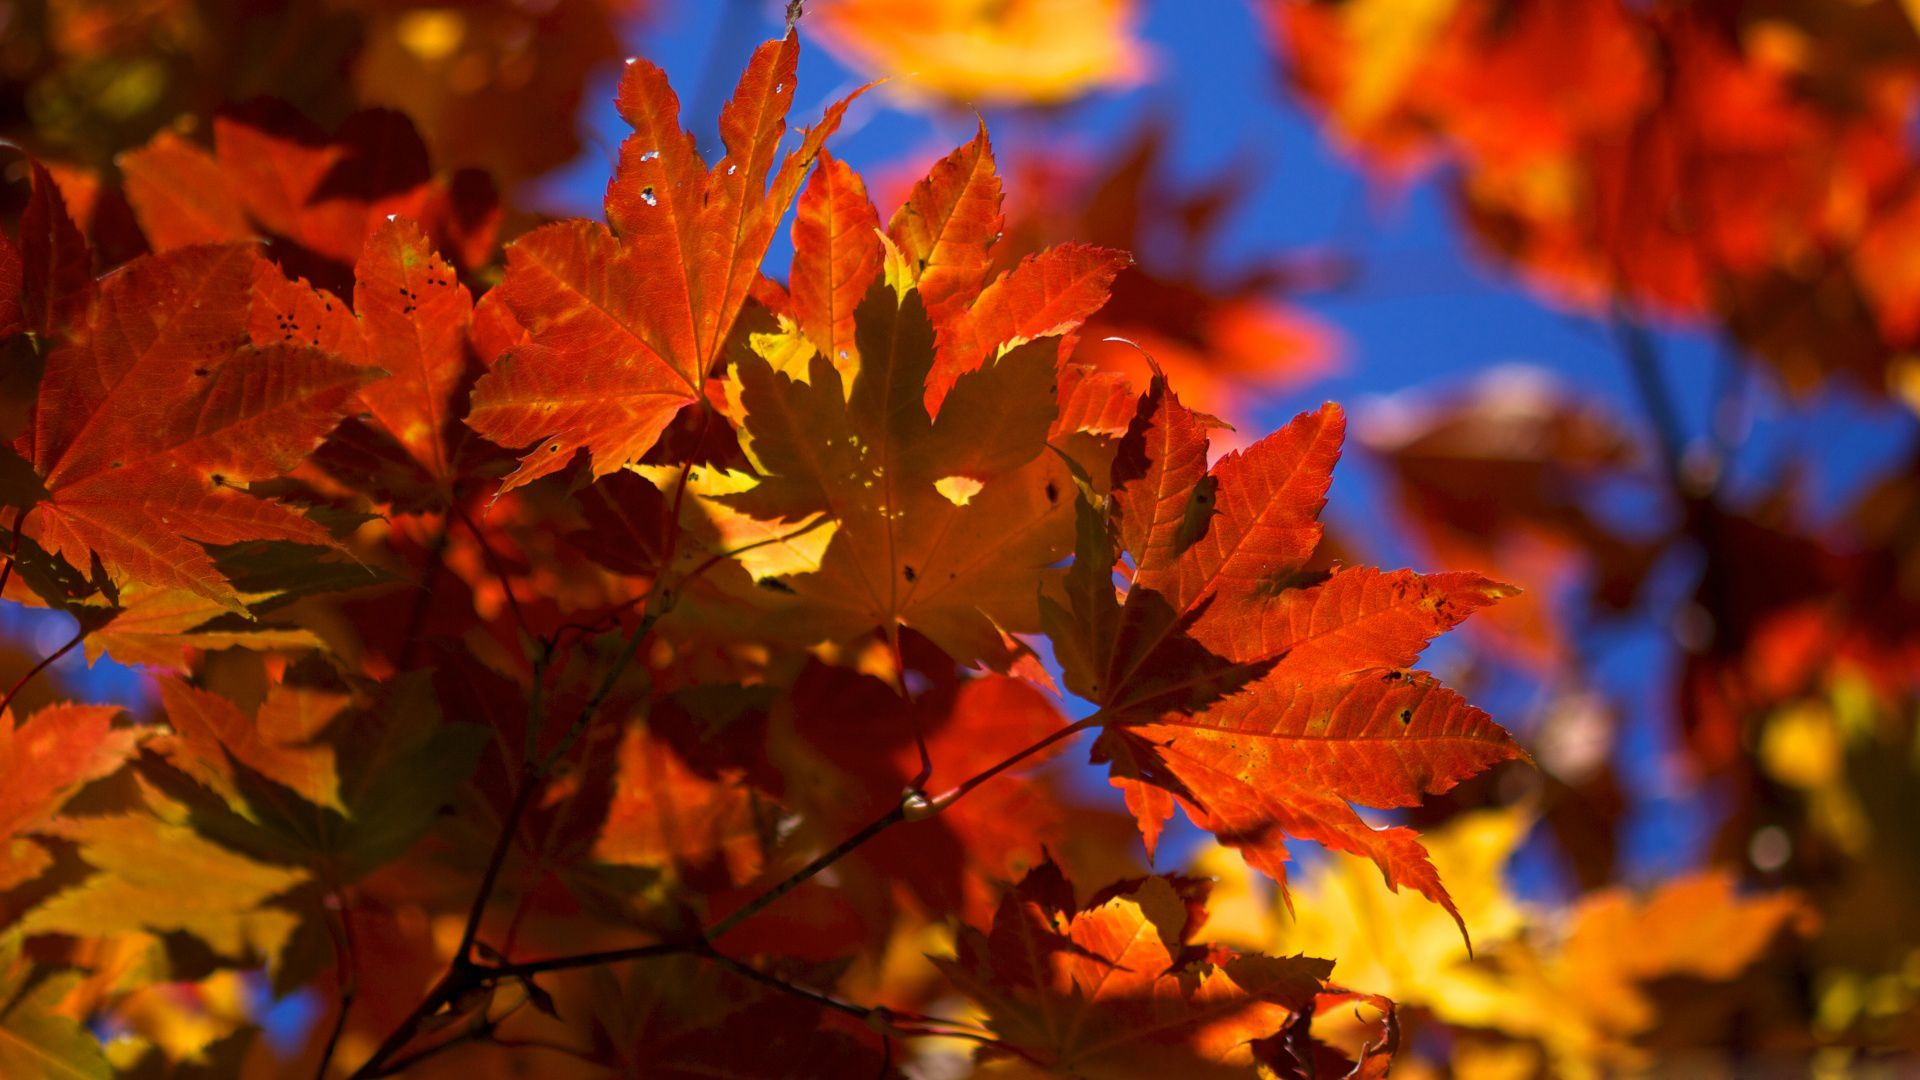 Fall Desktop Wallpaper High Resolution Click Wallpapers Autumn Leaves Wallpaper Autumn Forest Fall Wallpaper